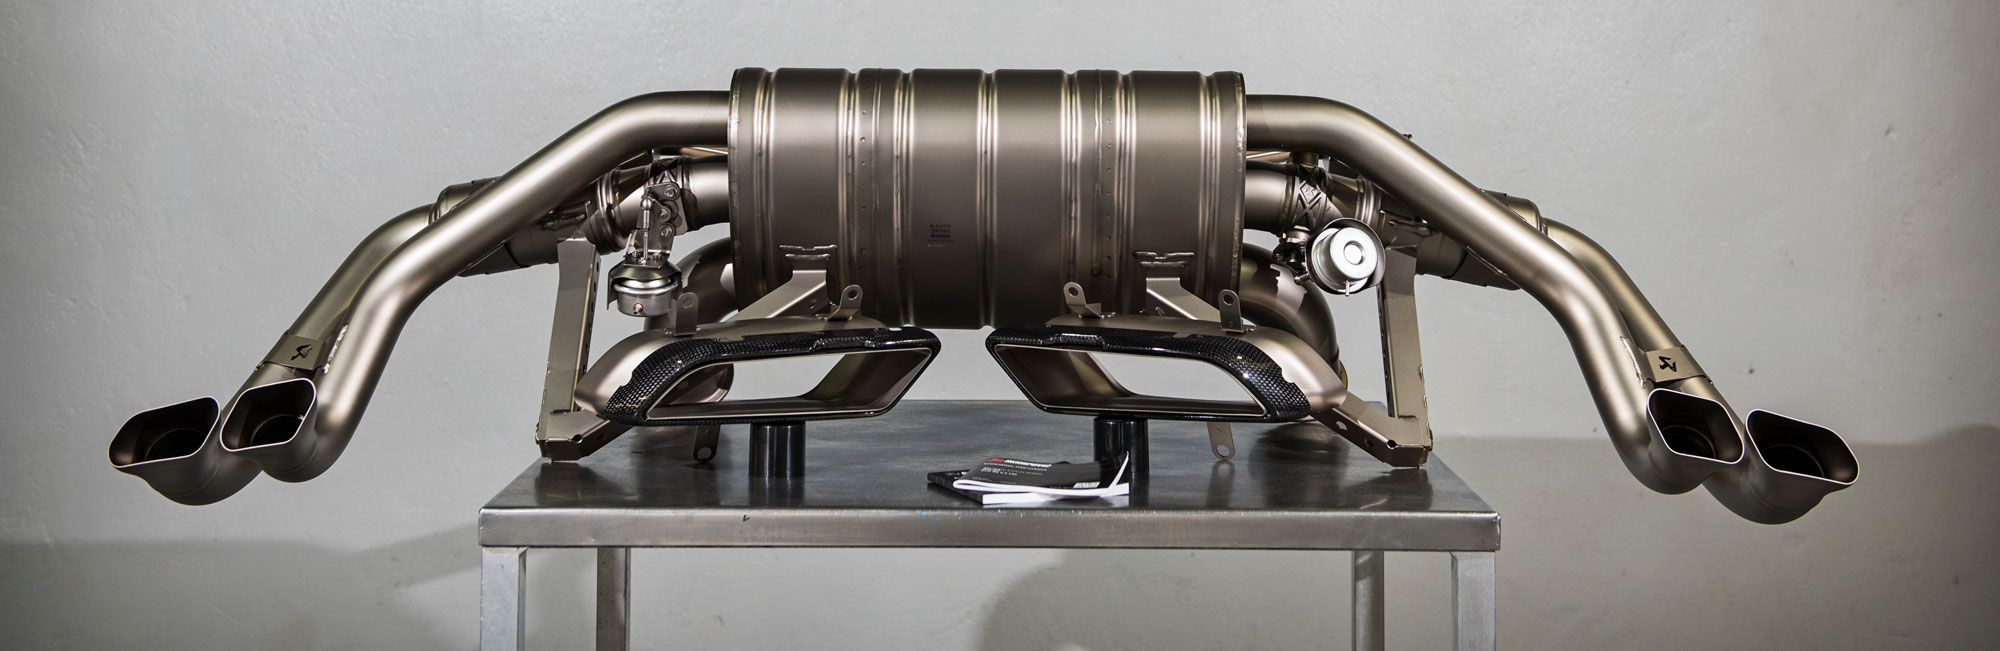 Akrapovic Exhaust technology